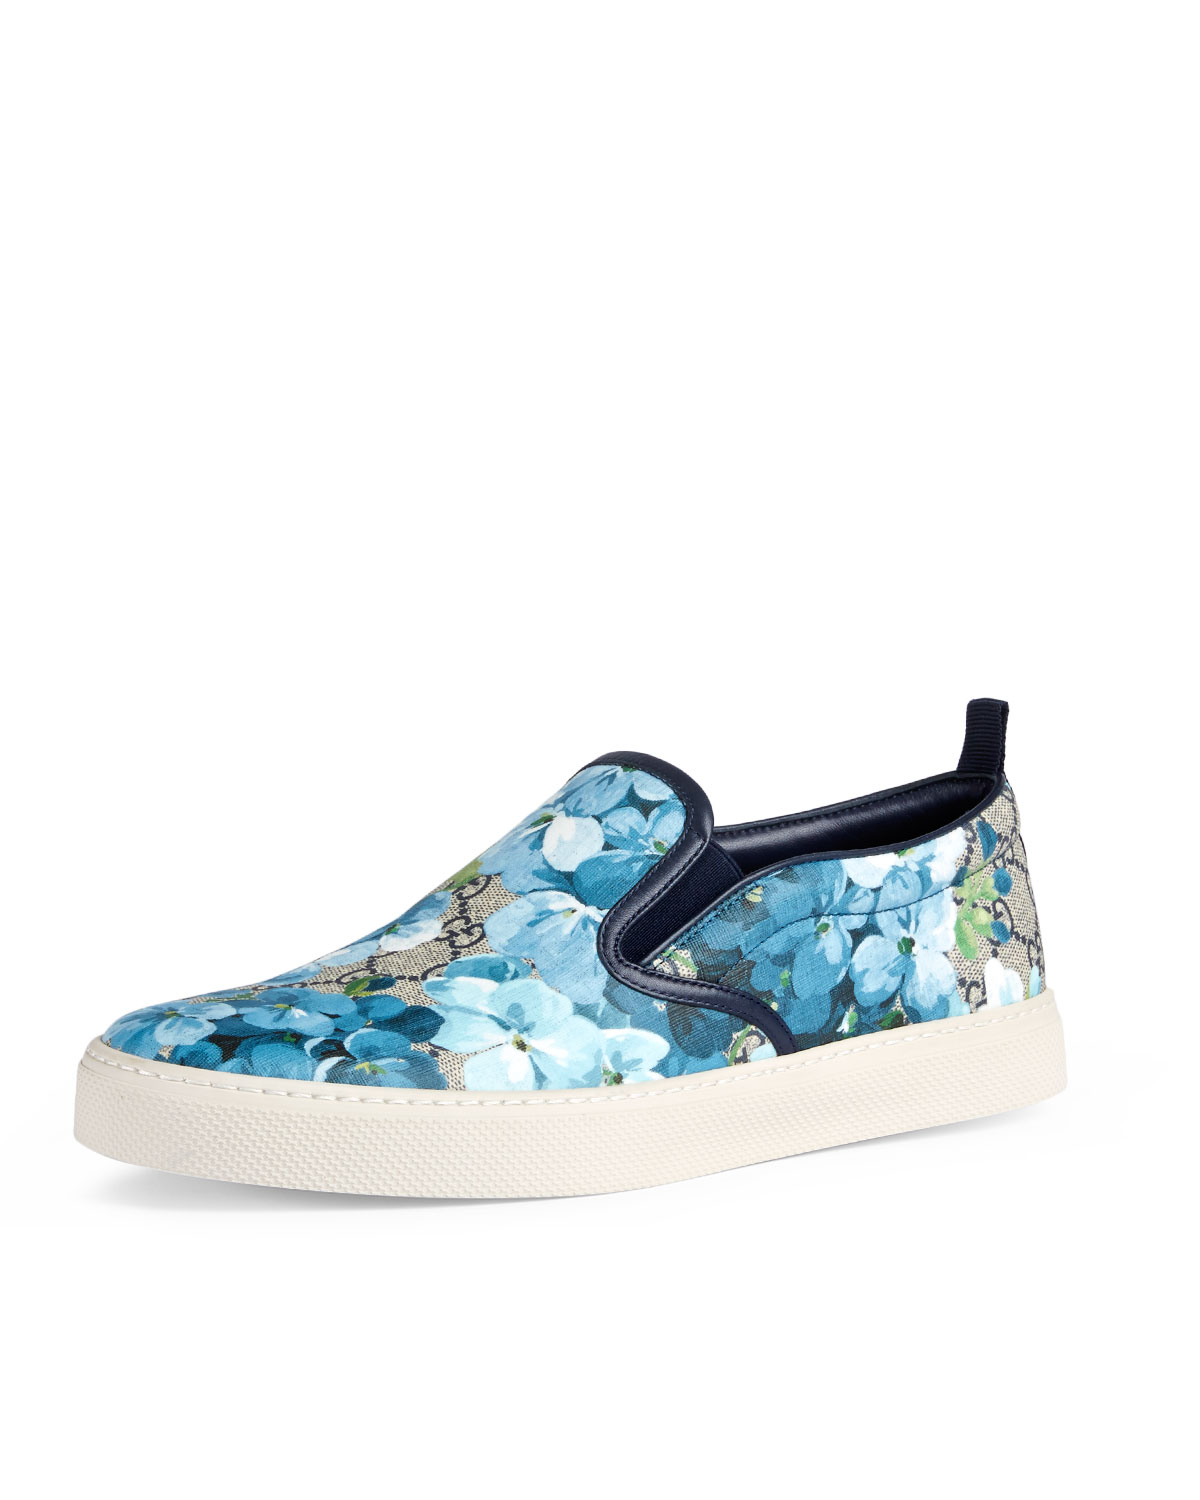 5a18057155f Gucci Dublin GG Blooms Canvas Slip-On Sneaker